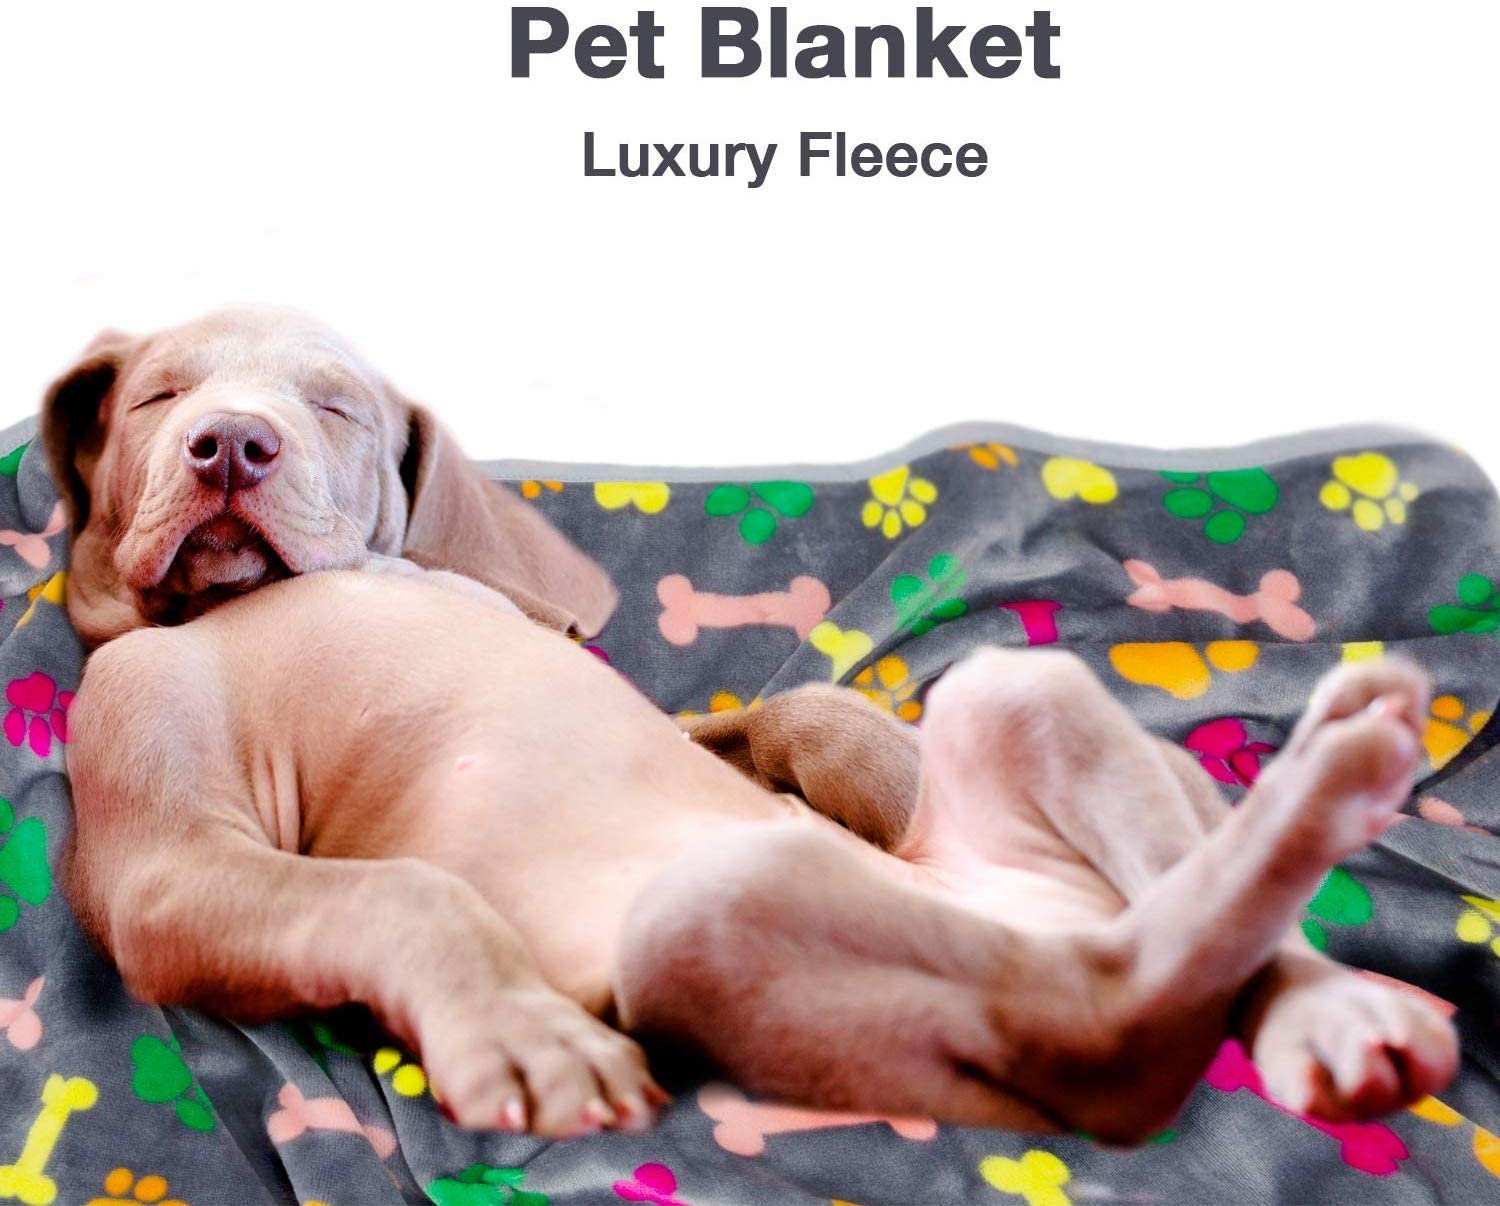 Medium and Large Dogs Cats and Kittens ALLISANDRO Extra Softness and Fluffy 350 GSM Lightweight Microplush Fleece Throw Blanket for Small All Season Machine Washable Pet Bed Mat Puppies